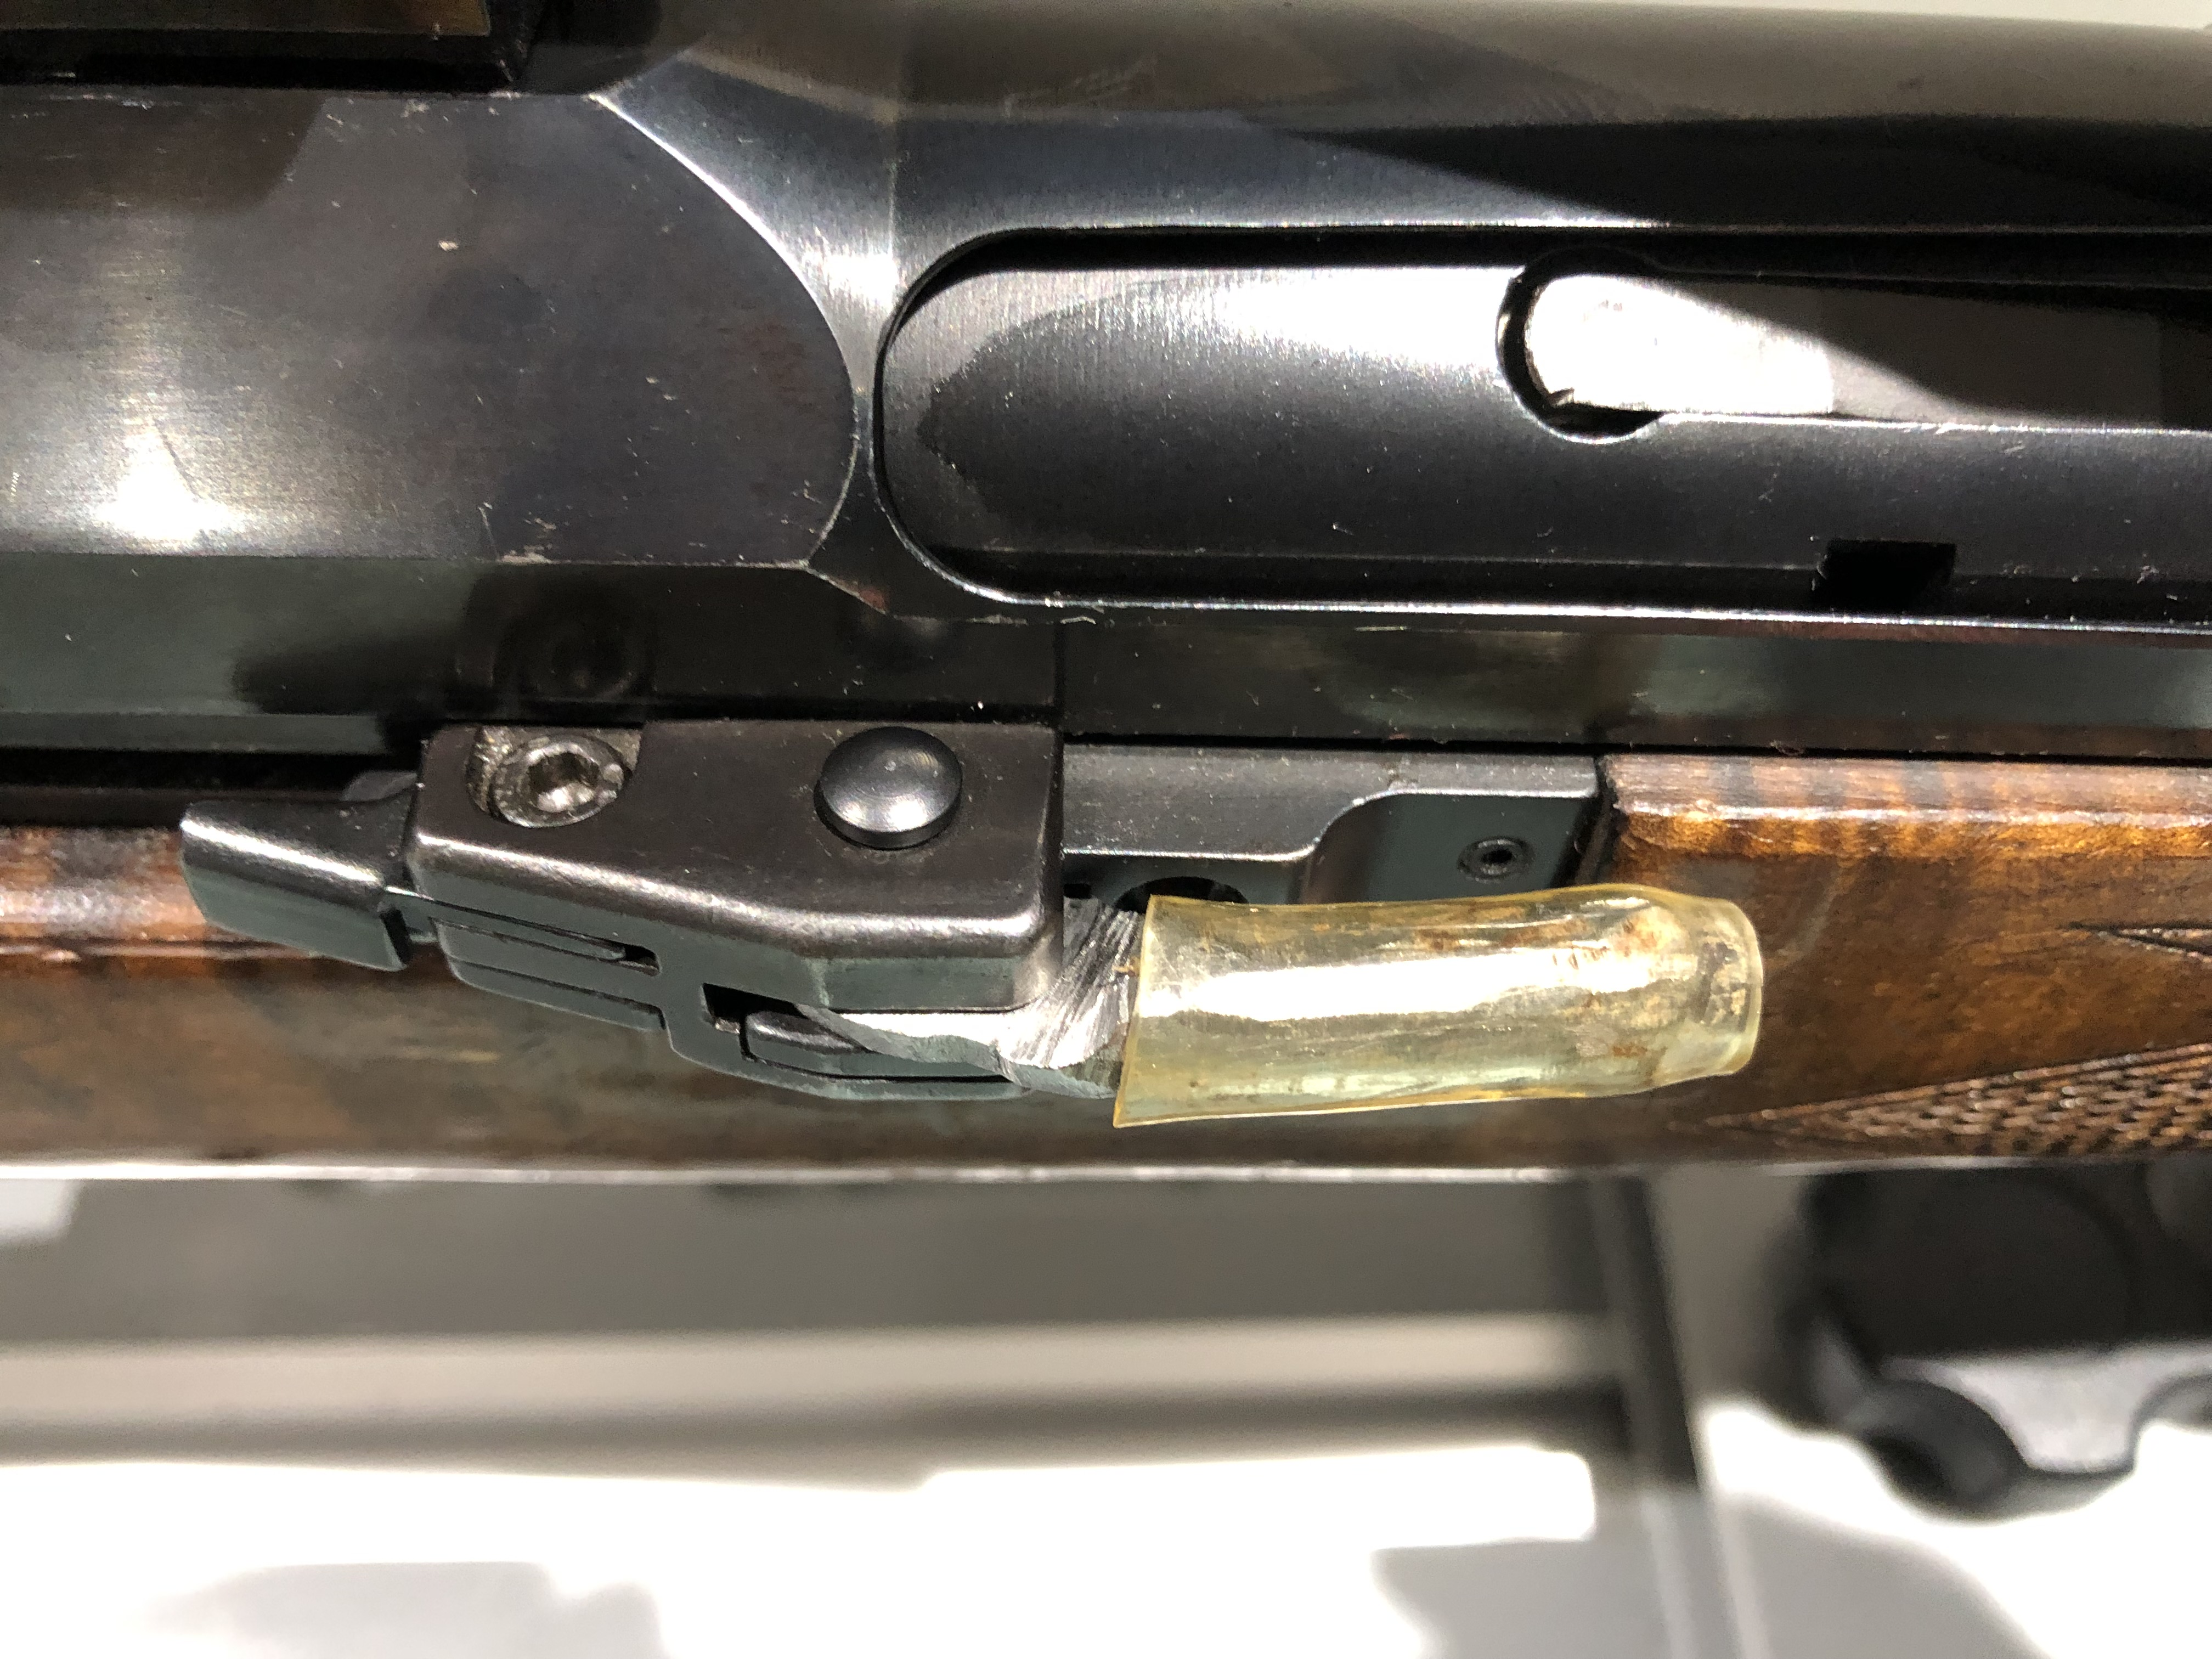 HK 630, 770, 940 - Cocking Lever (Charging Handle) Removal and Replacement-3.jpg